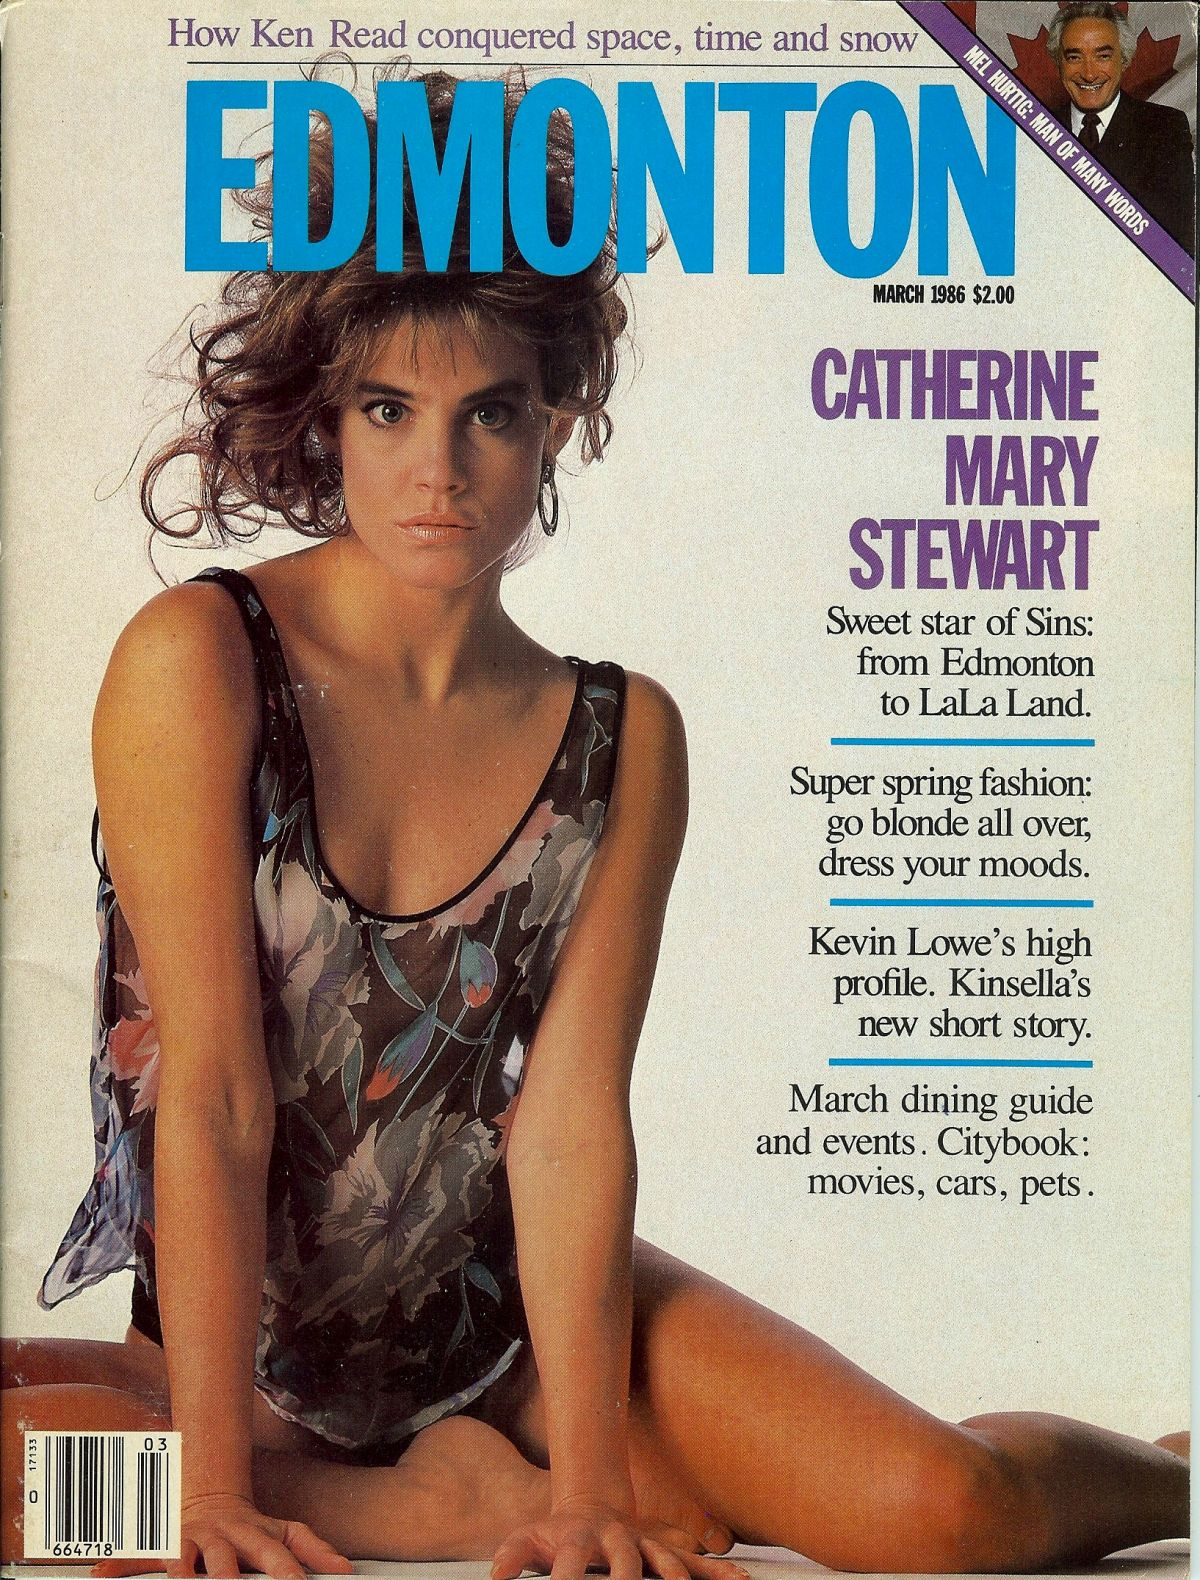 catherine mary stewart wikipedia